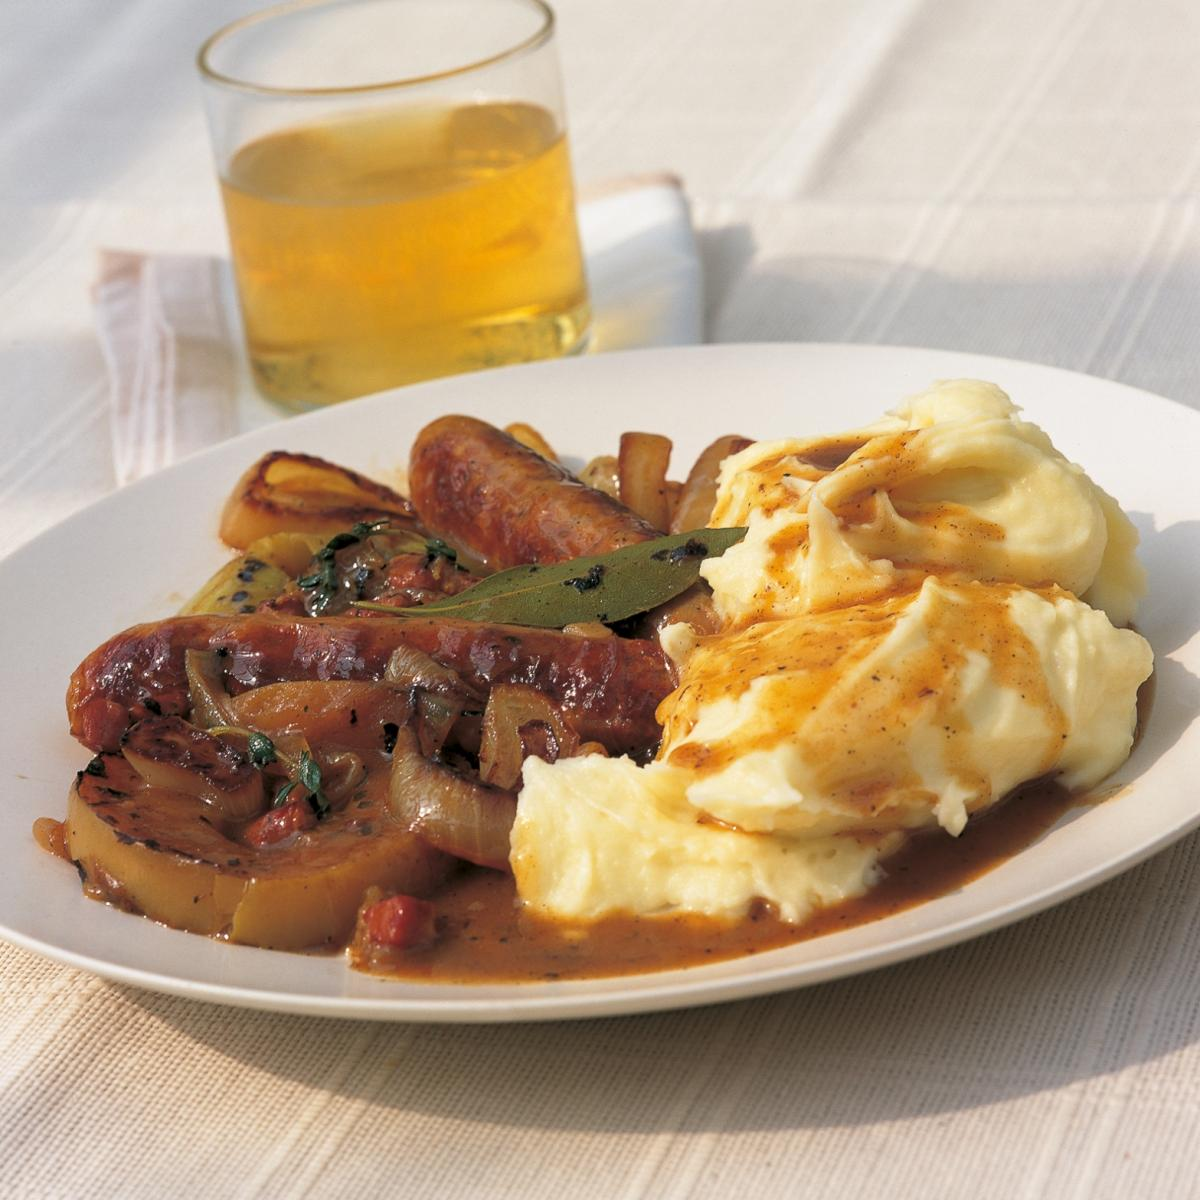 A picture of Delia's Pork Sausages Braised in Cider with Apples and Juniper recipe